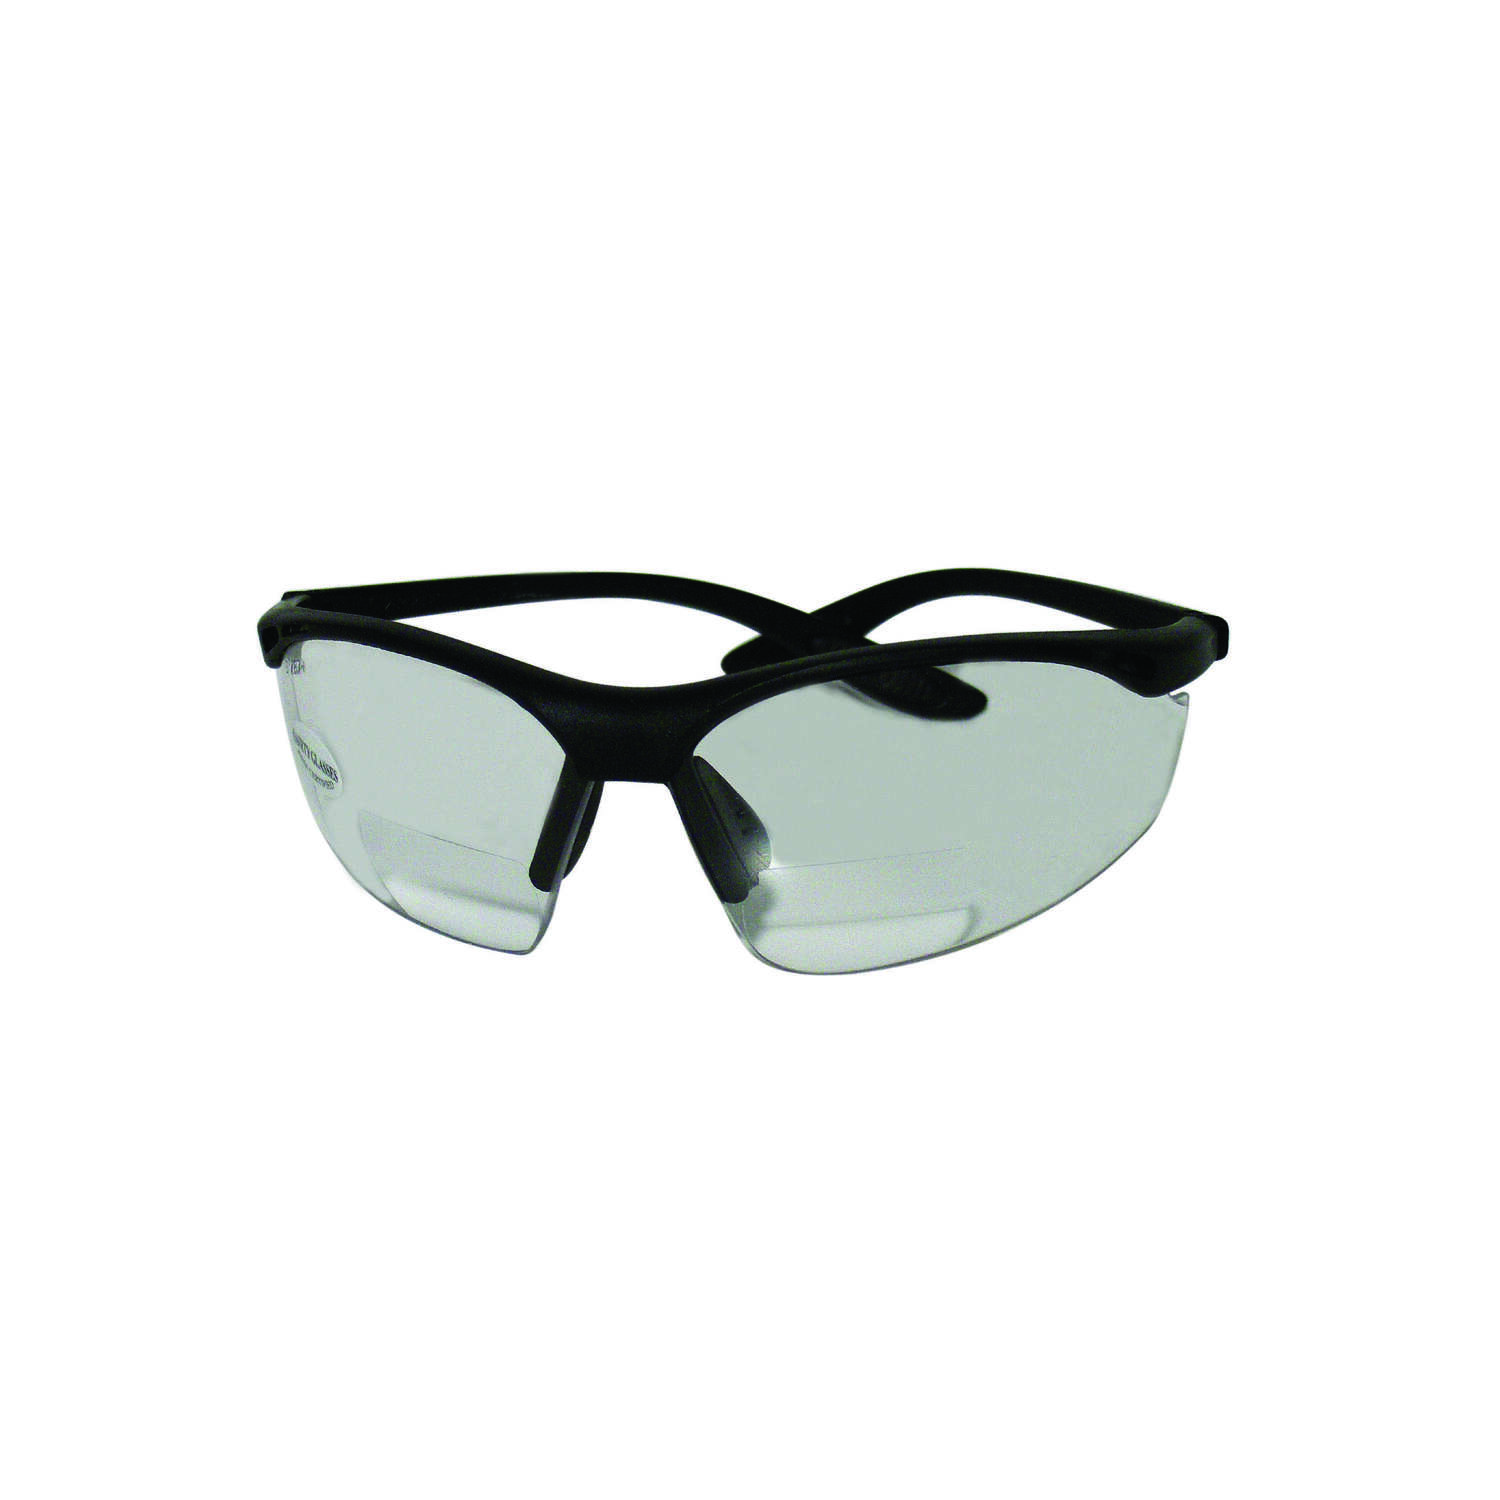 Sierra Ranch  Bi-Focal Safety Readers  Clear Lens Black Frame 1 pc.